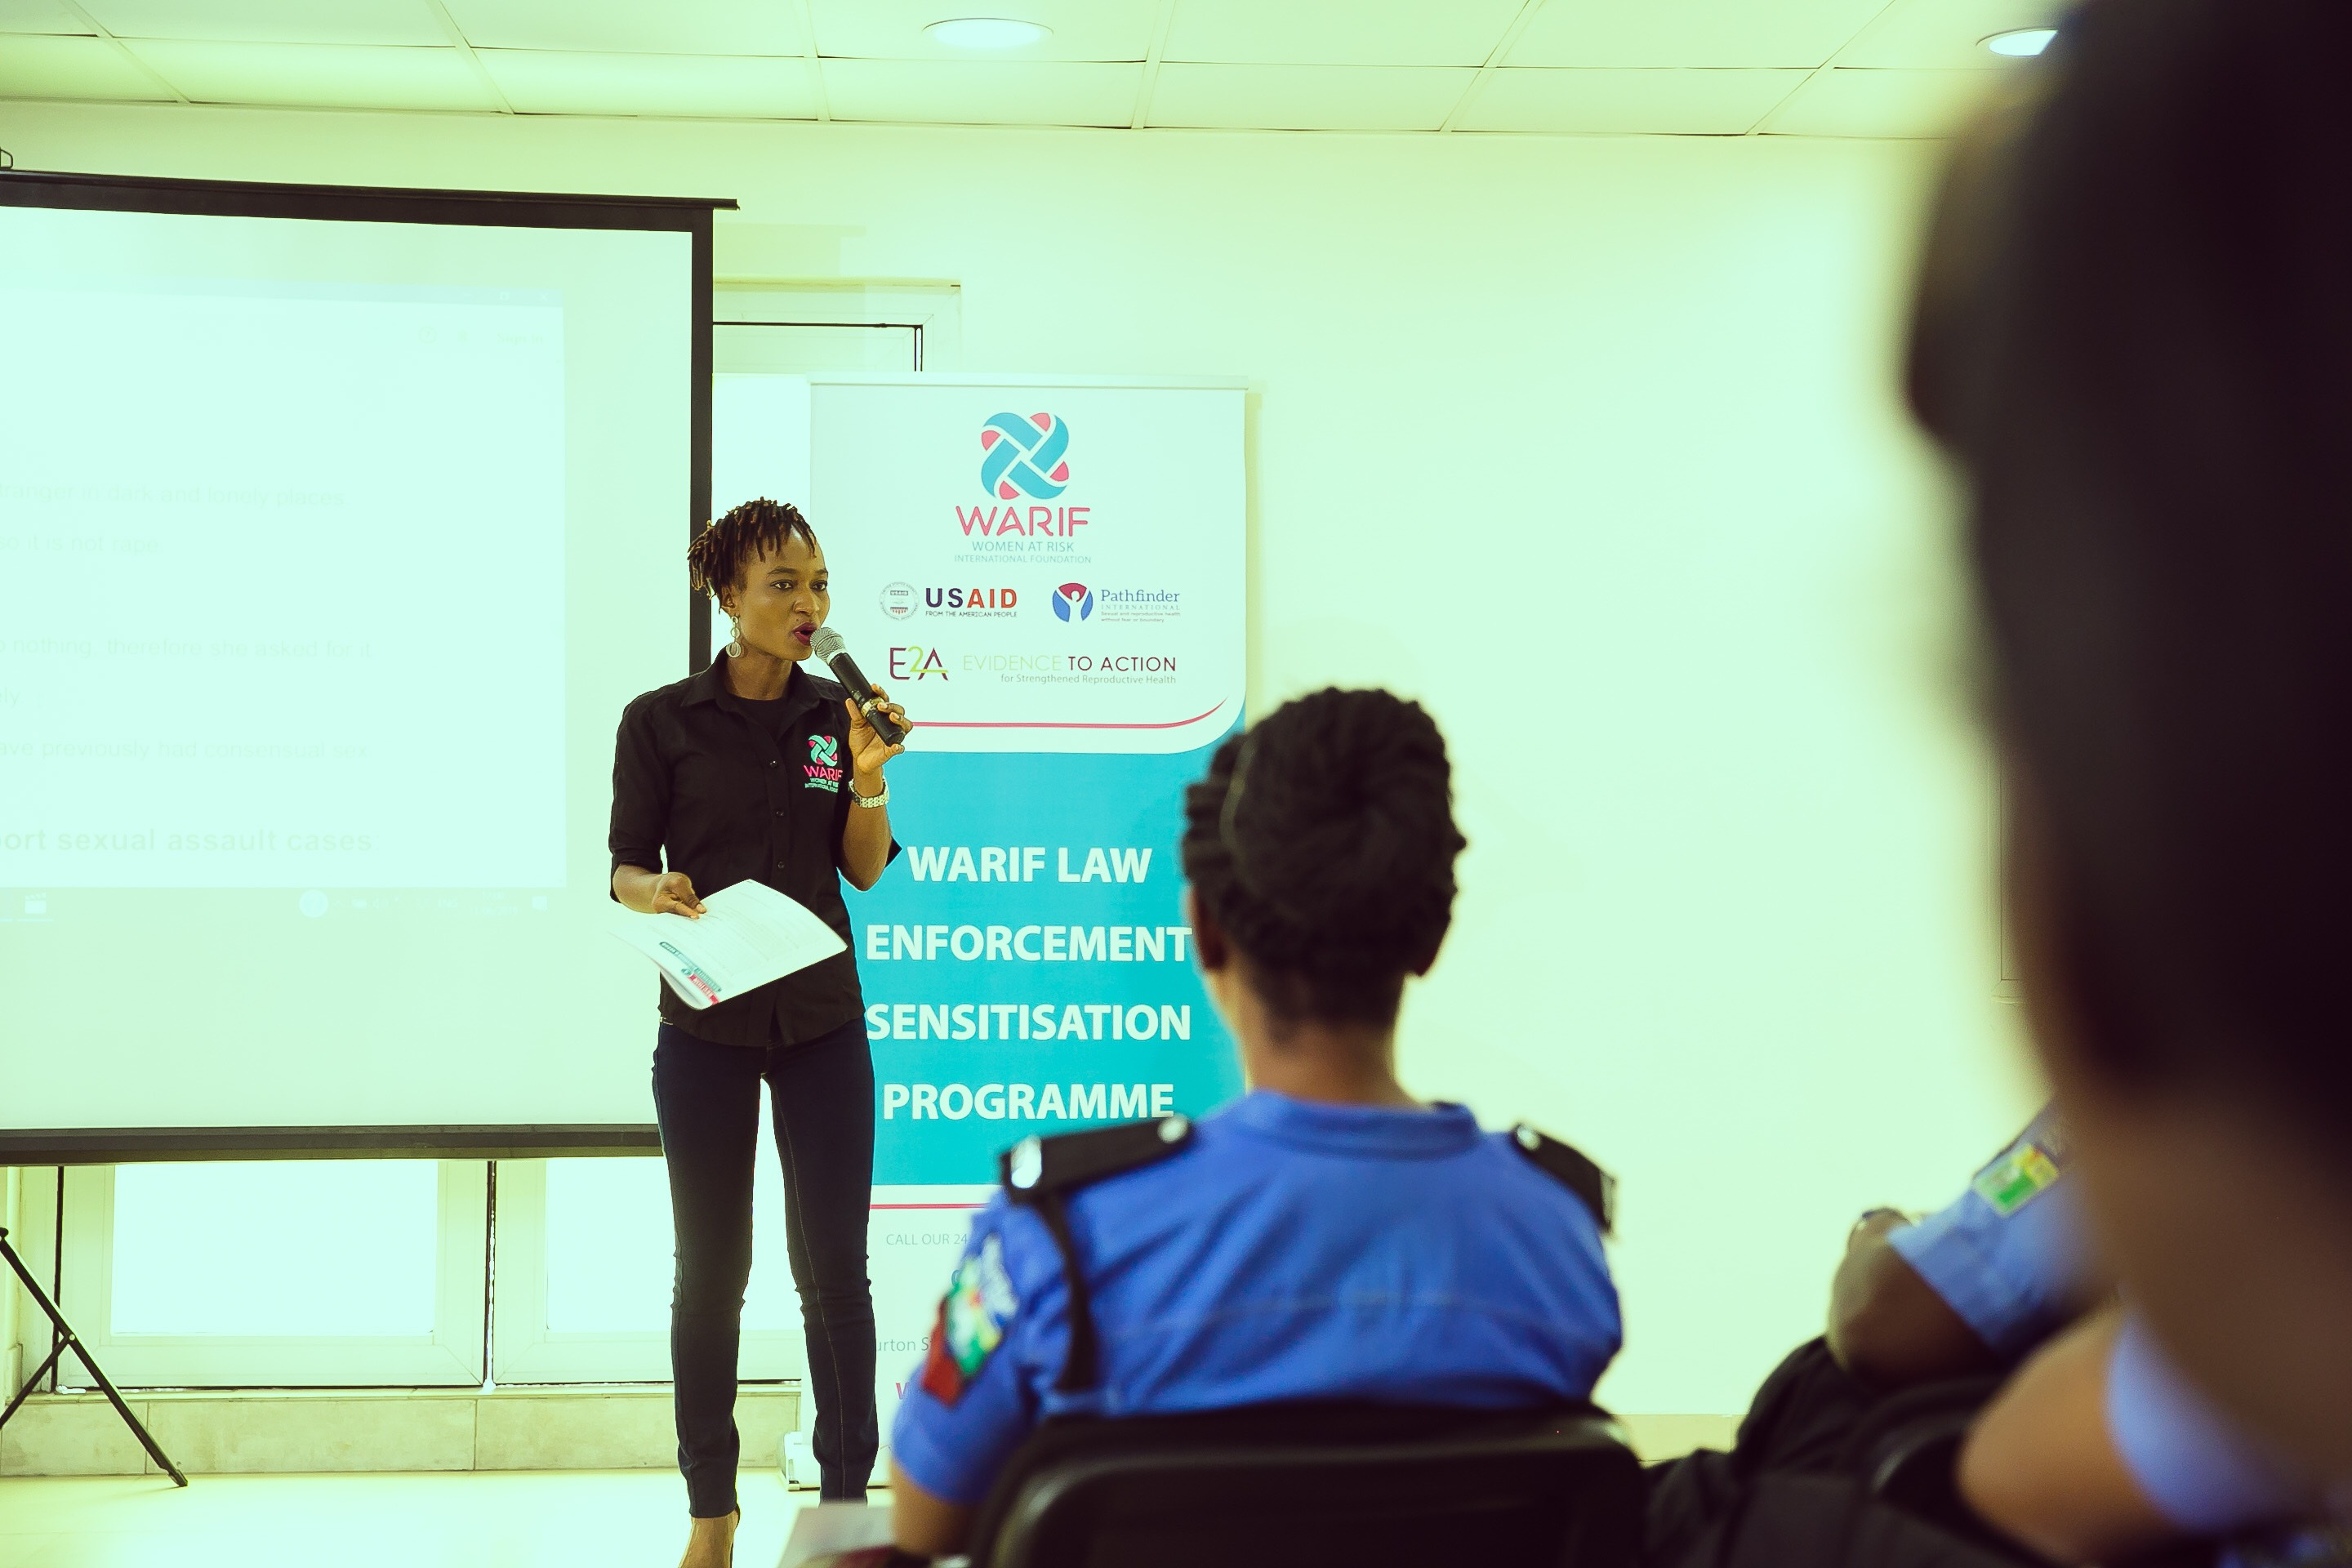 WARIF trains Police Officers in its Law Enforcement Case Management Sensitisation Program (Photos)